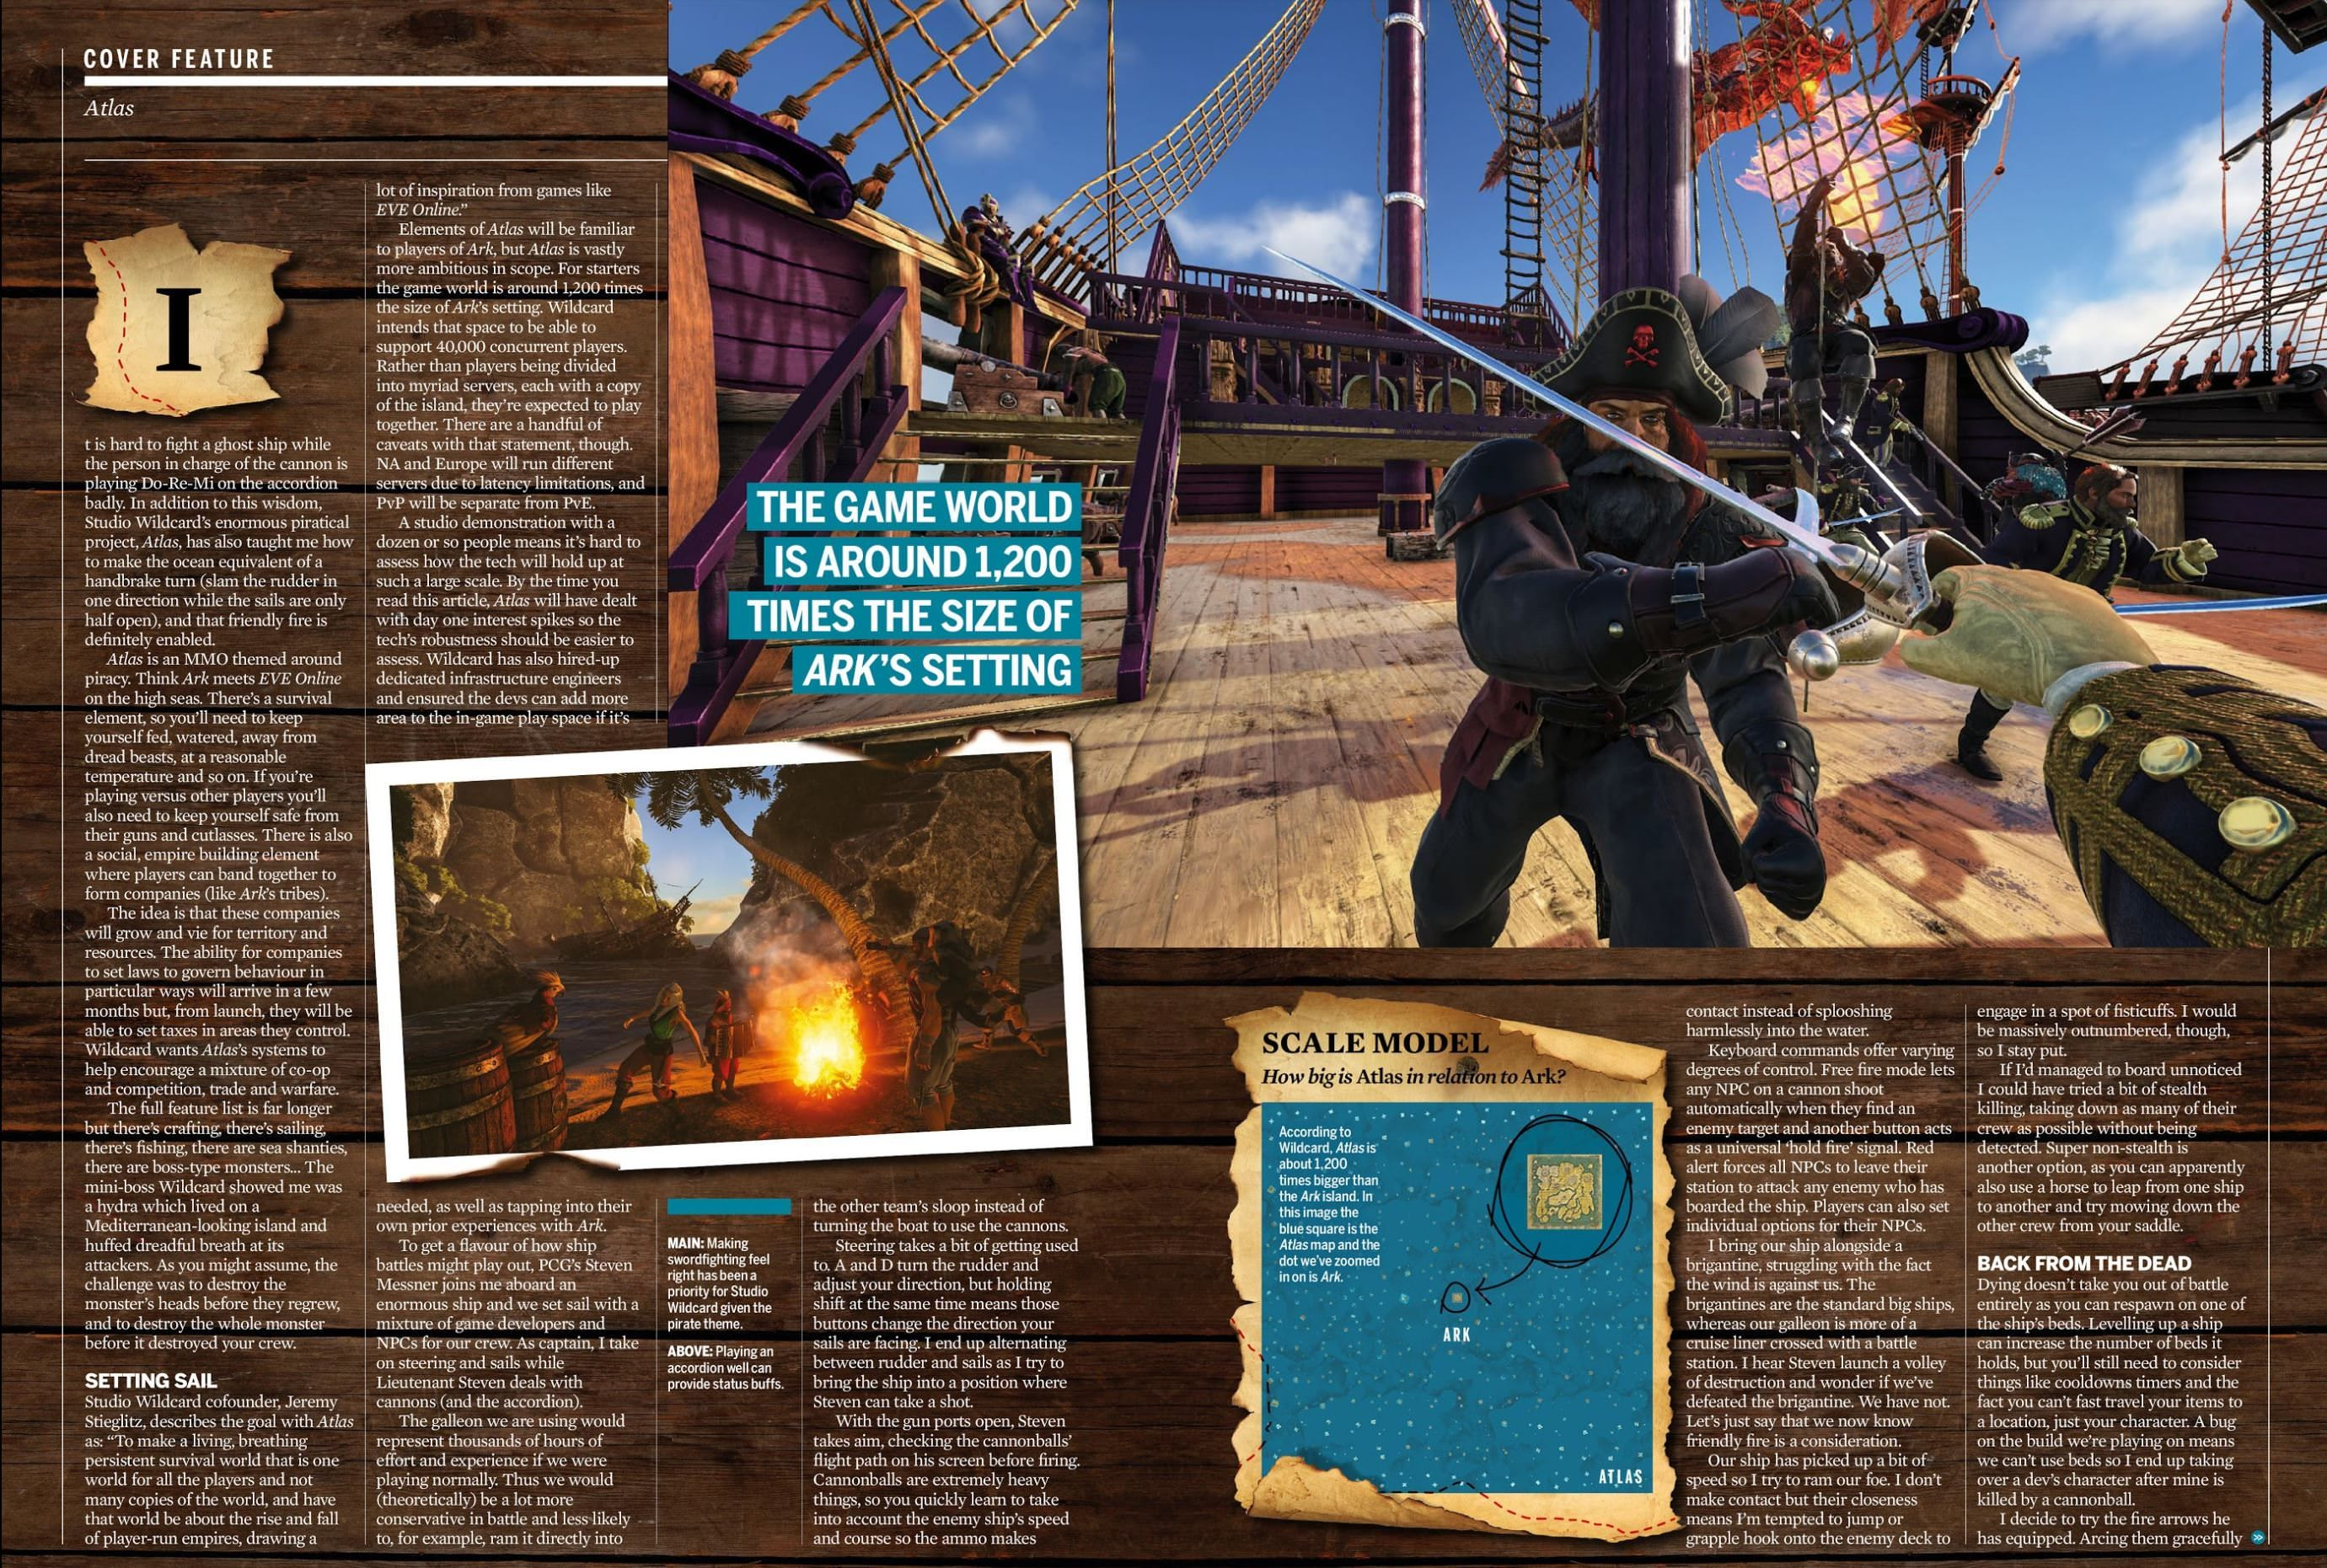 More Info About Upcoming Mmorpg Atlas From The Pc Gamer Uk Mmo